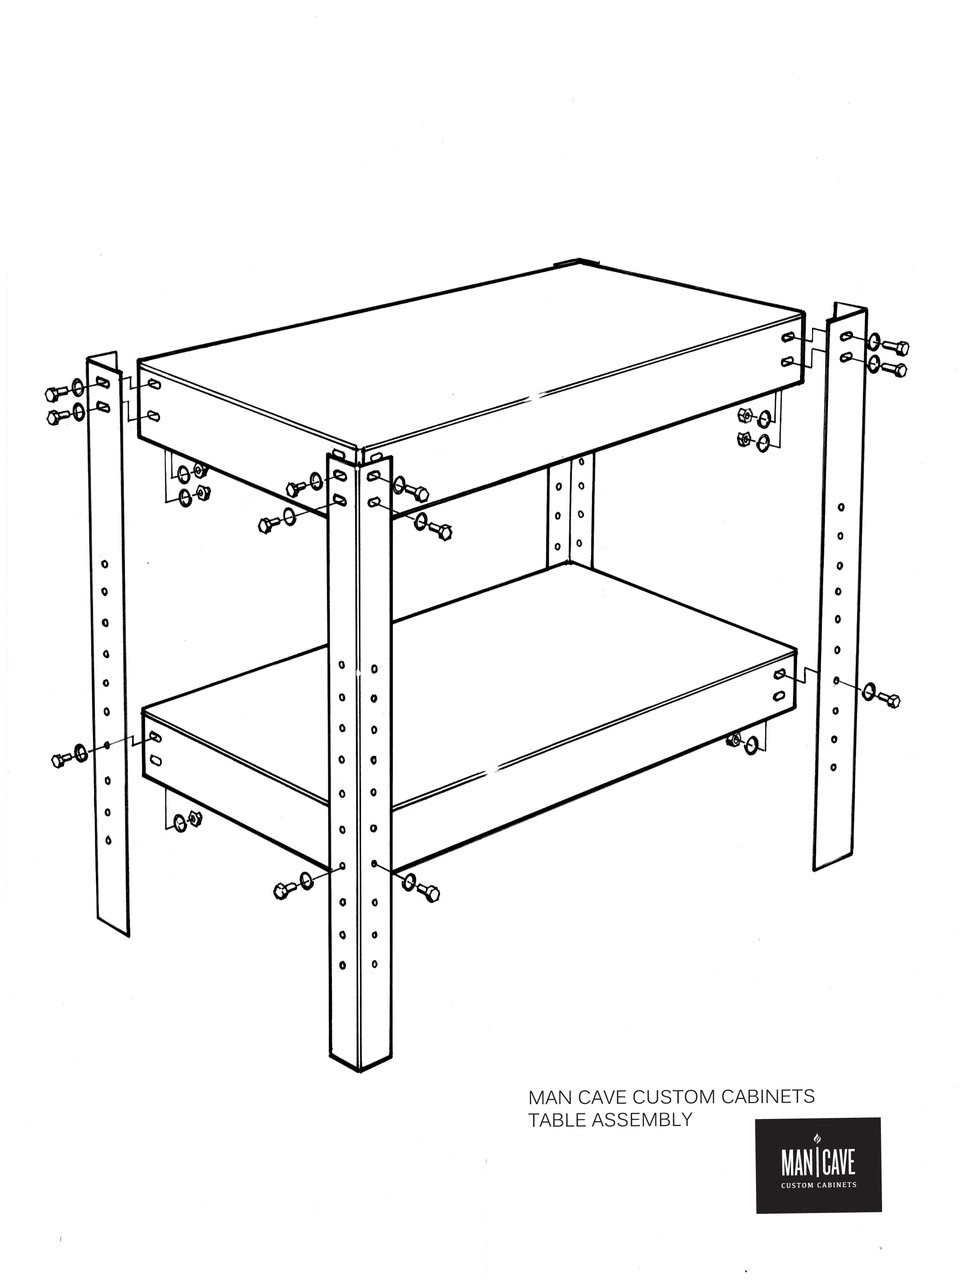 Man Cave Table Assembly Drawing